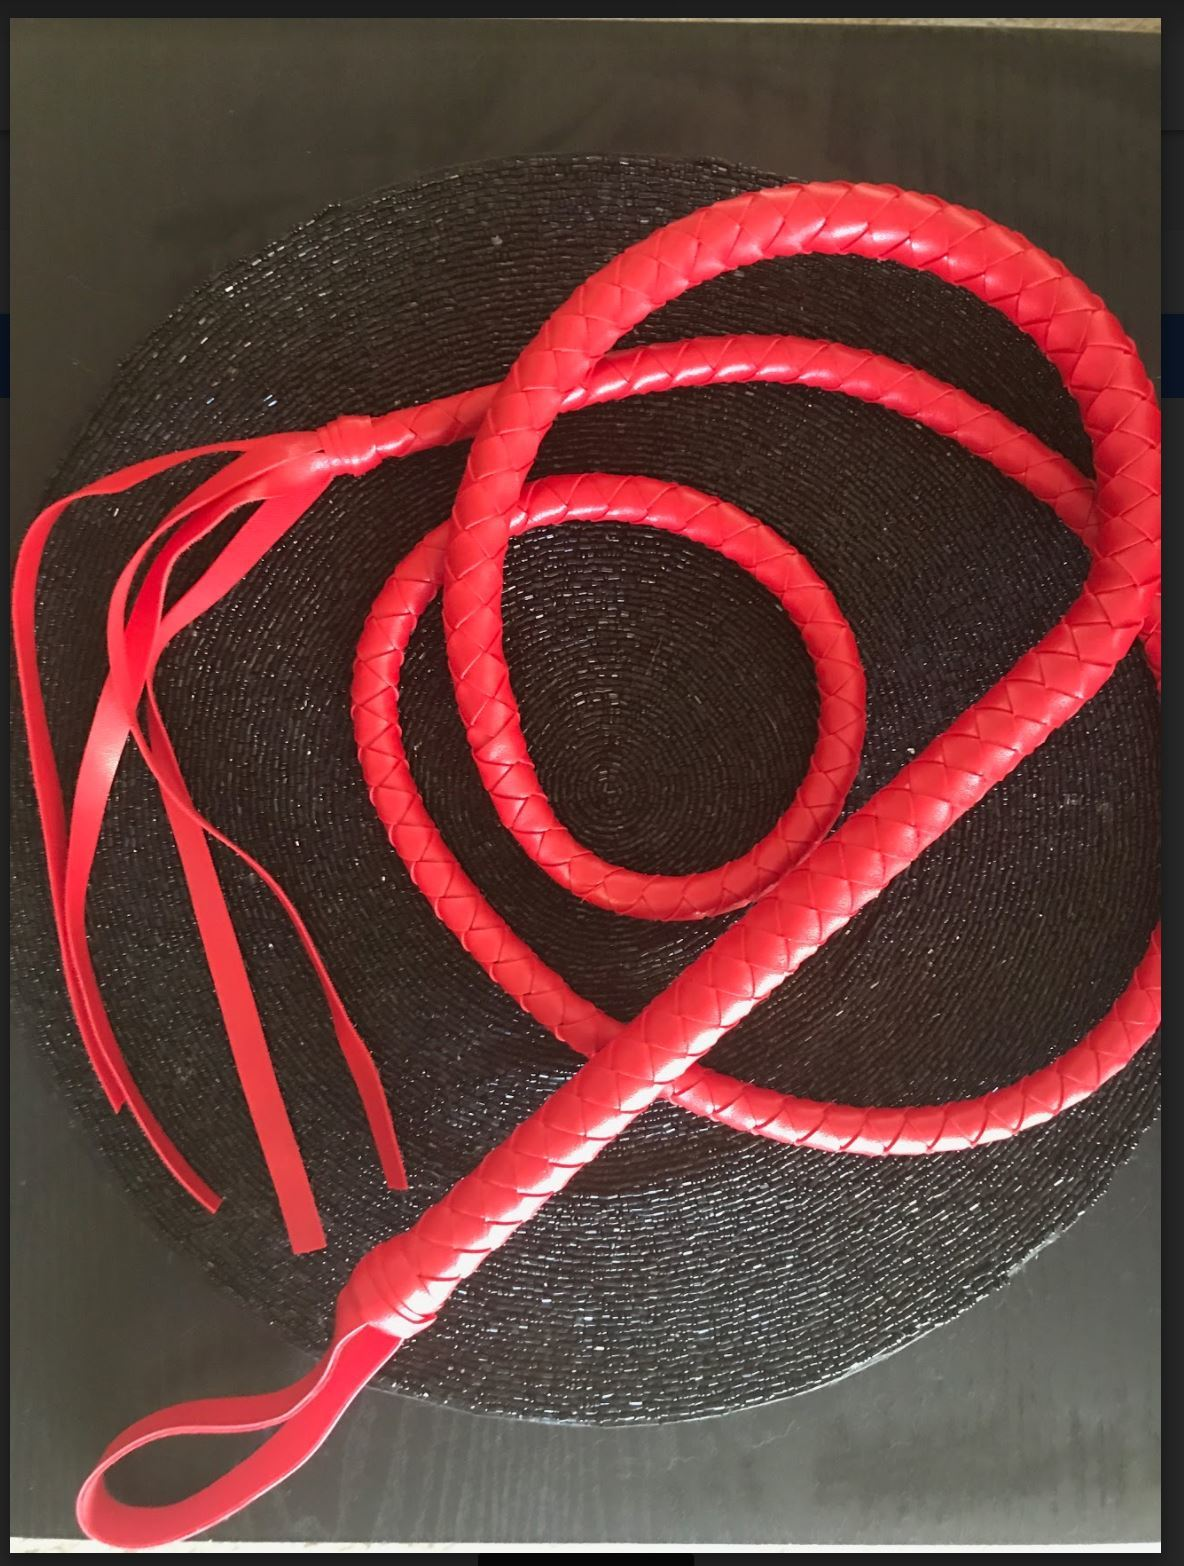 Whip it Good: safety basics for whips (and other impact play) - a KinkCrate piece